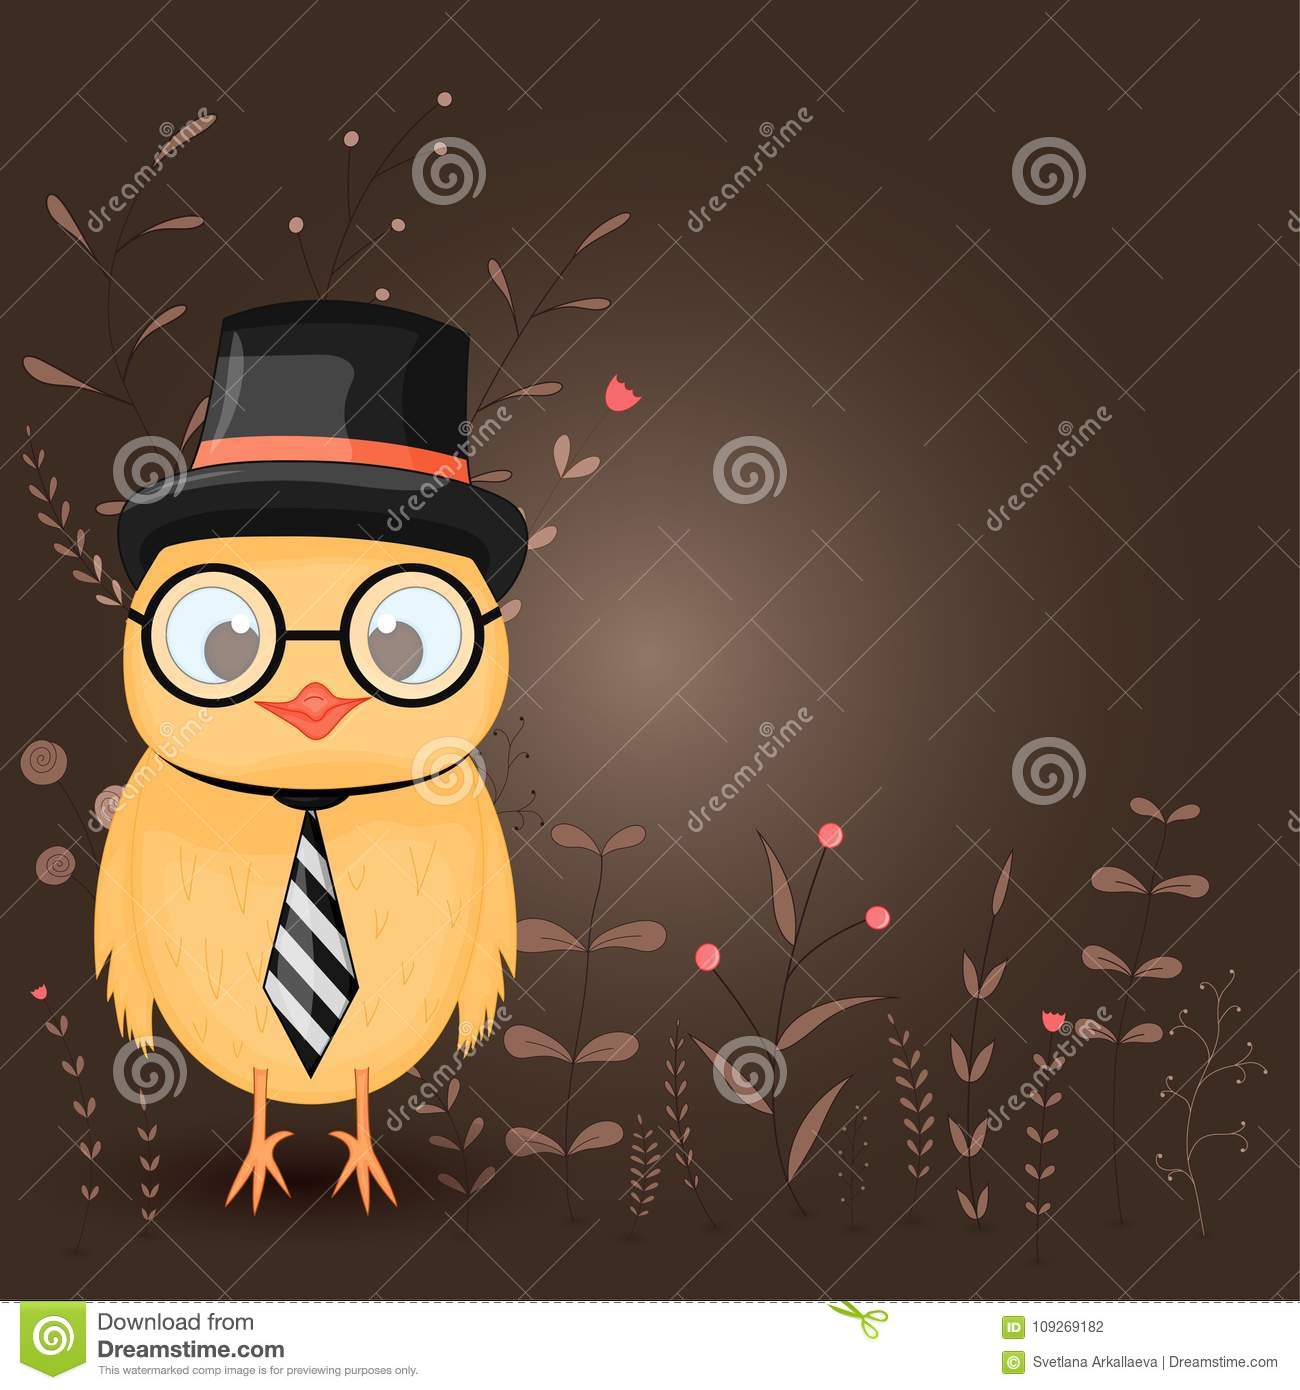 template for text with cartoon animals a chicken in a top hat and